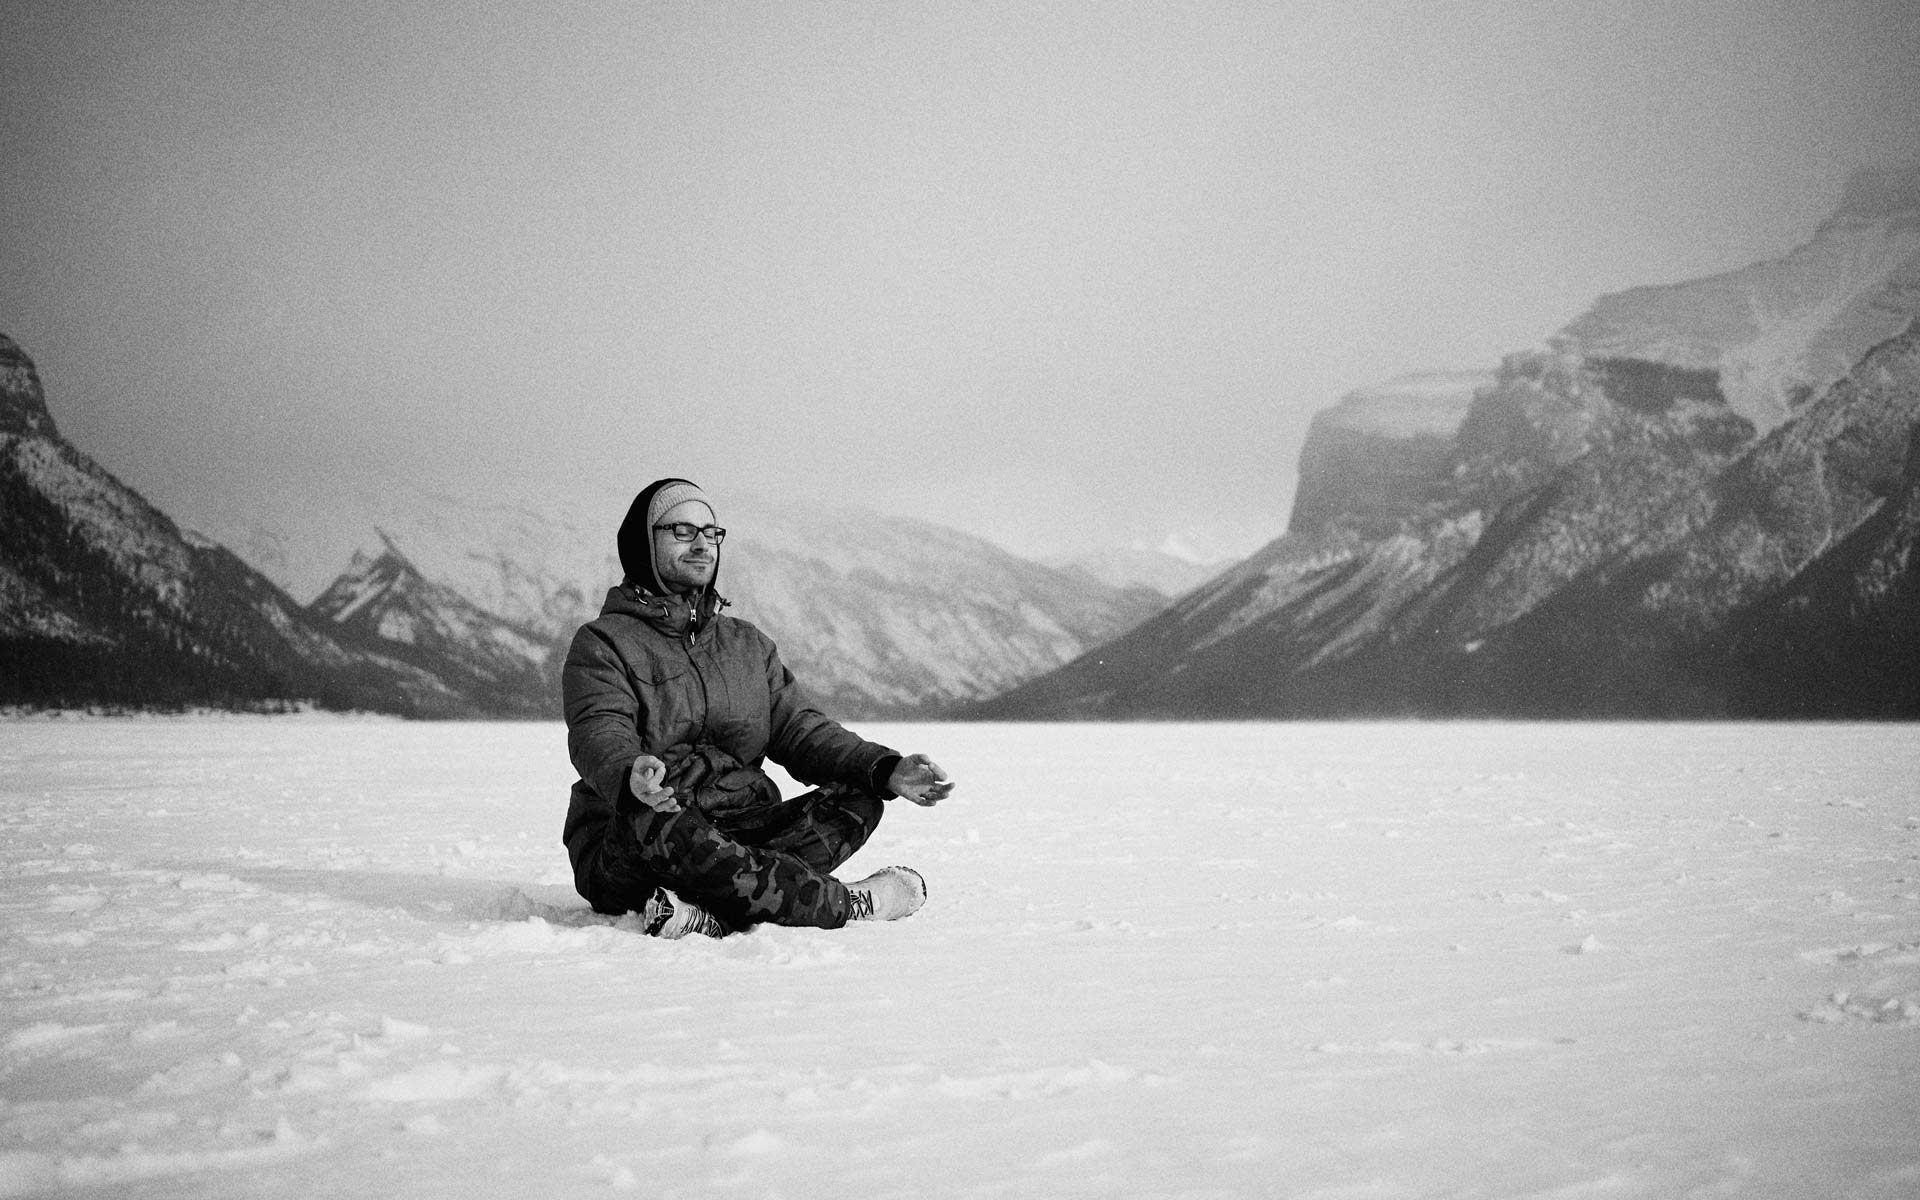 Simon-Calnan-Meditation-Mountains-Canada-Frozen-Lake